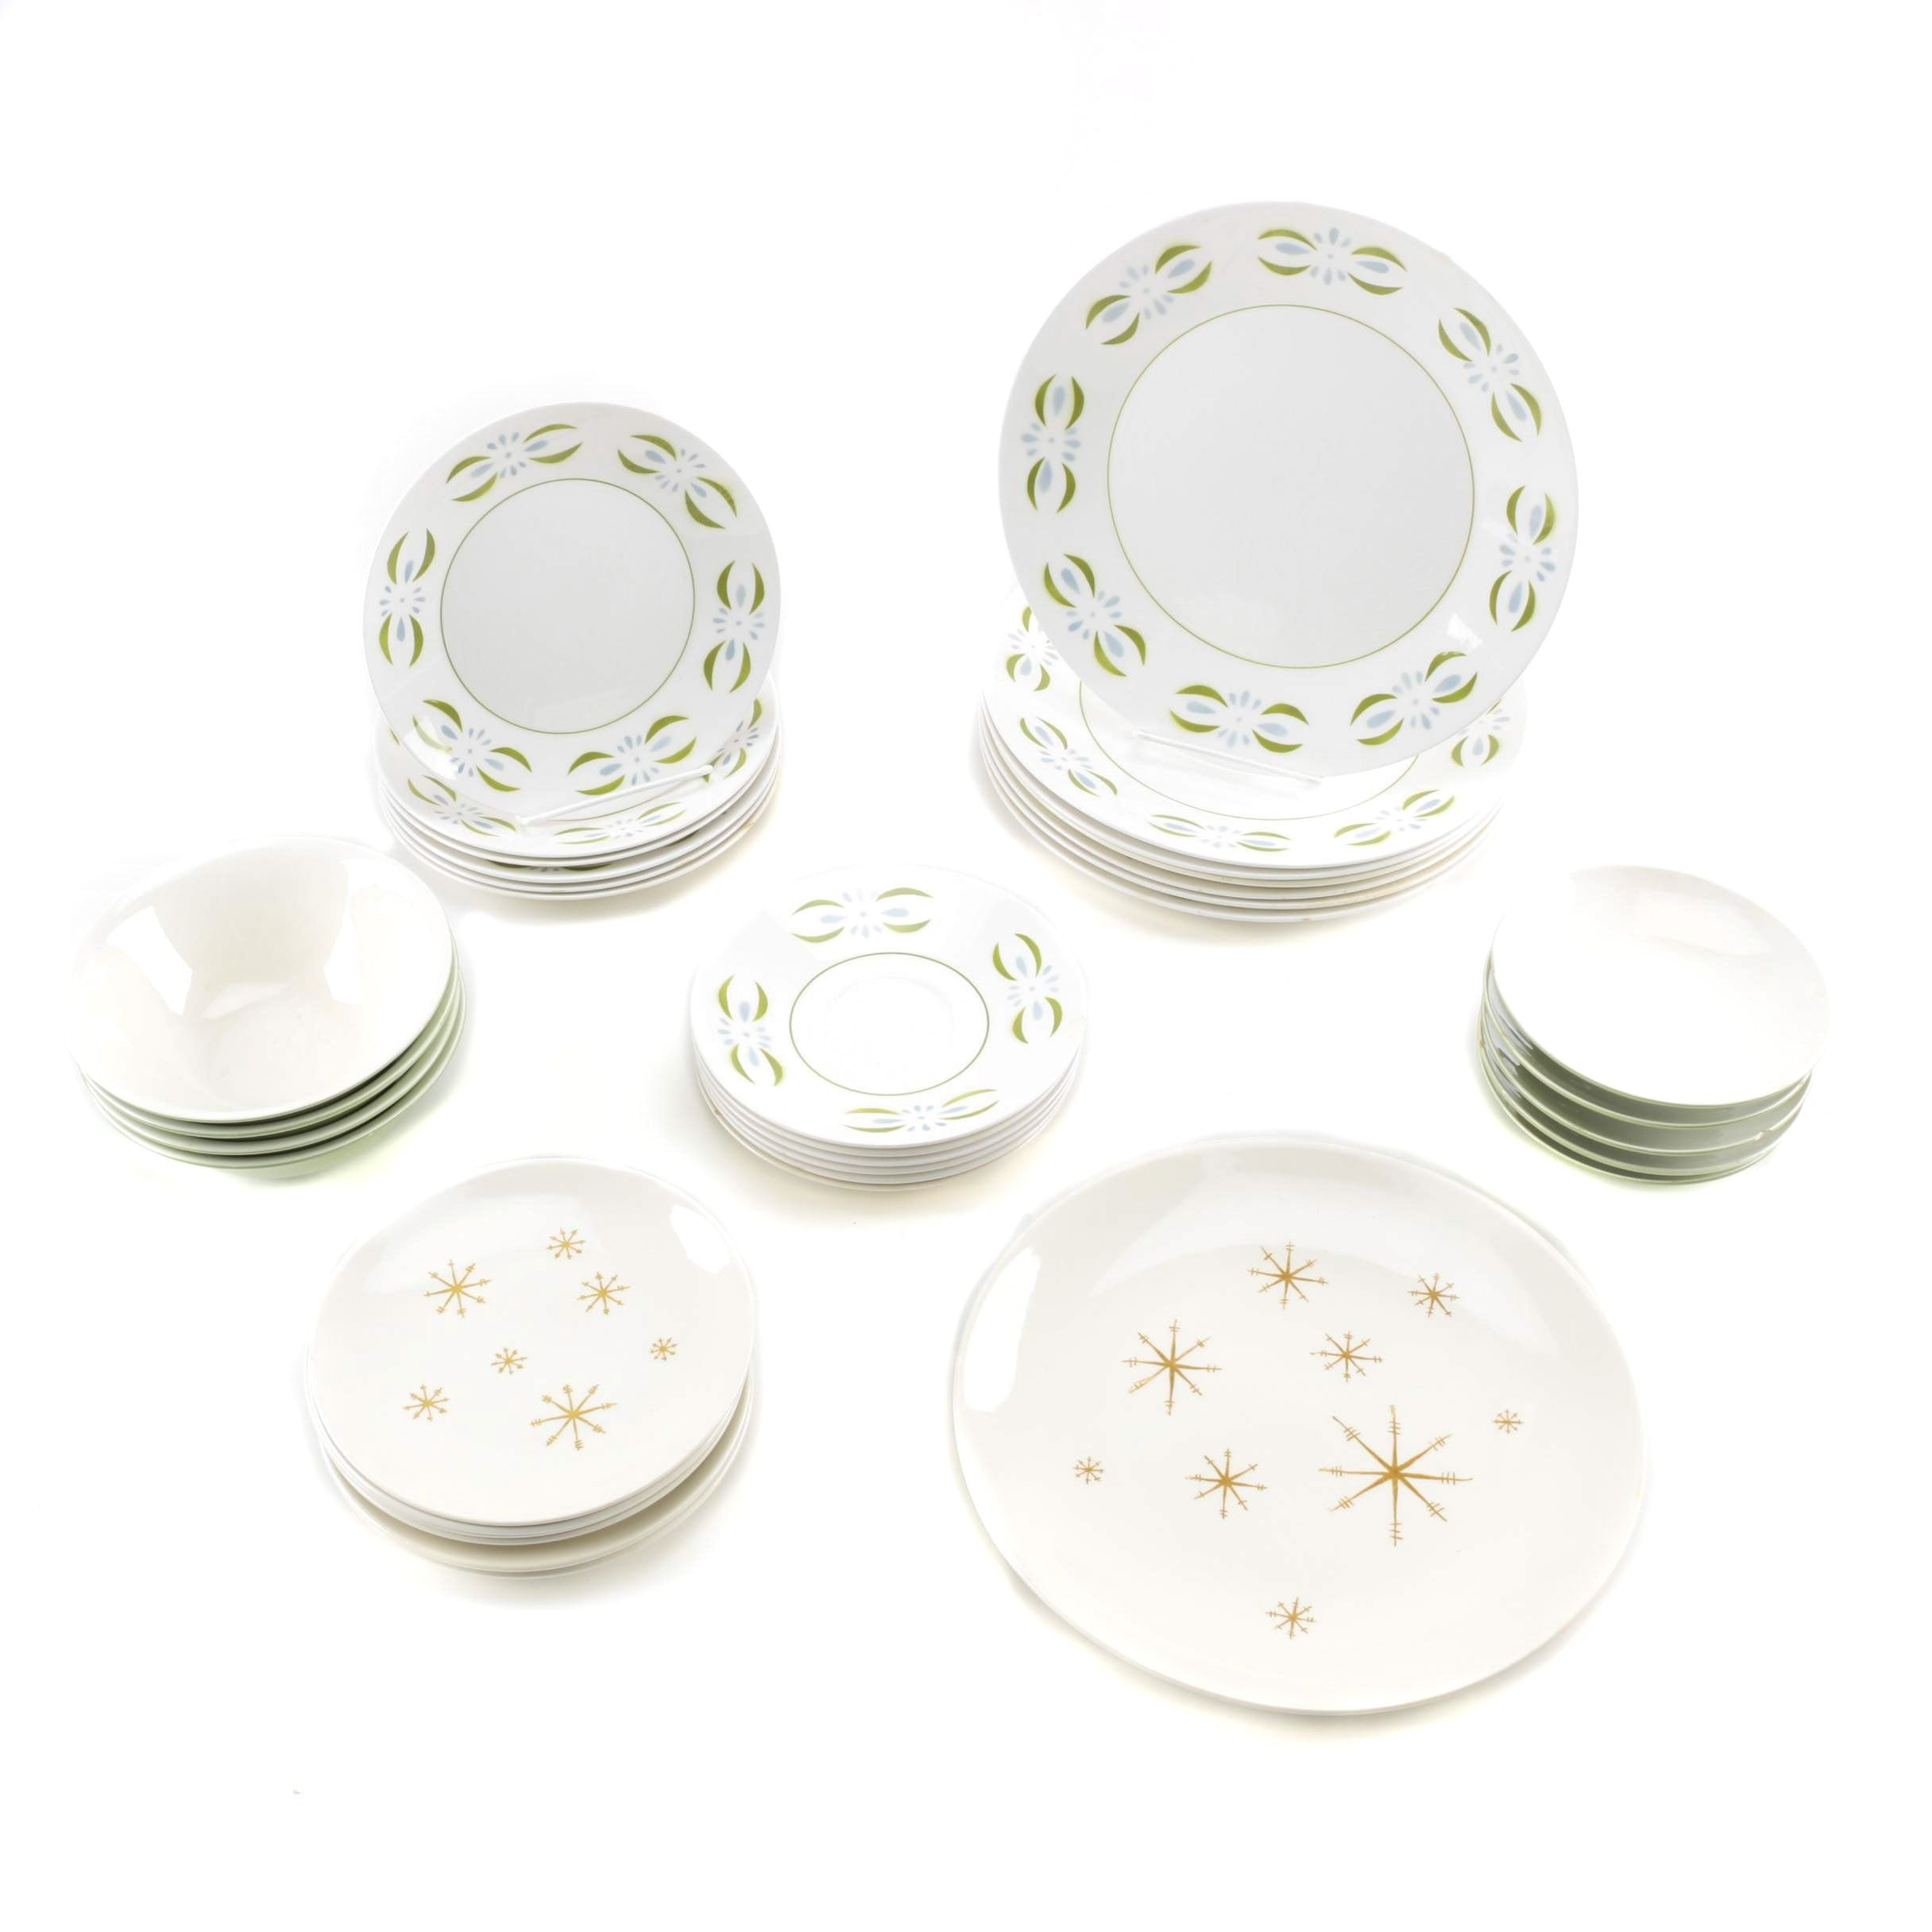 Selection of Ceramic Plates Featuring Star Glow and Mikasa